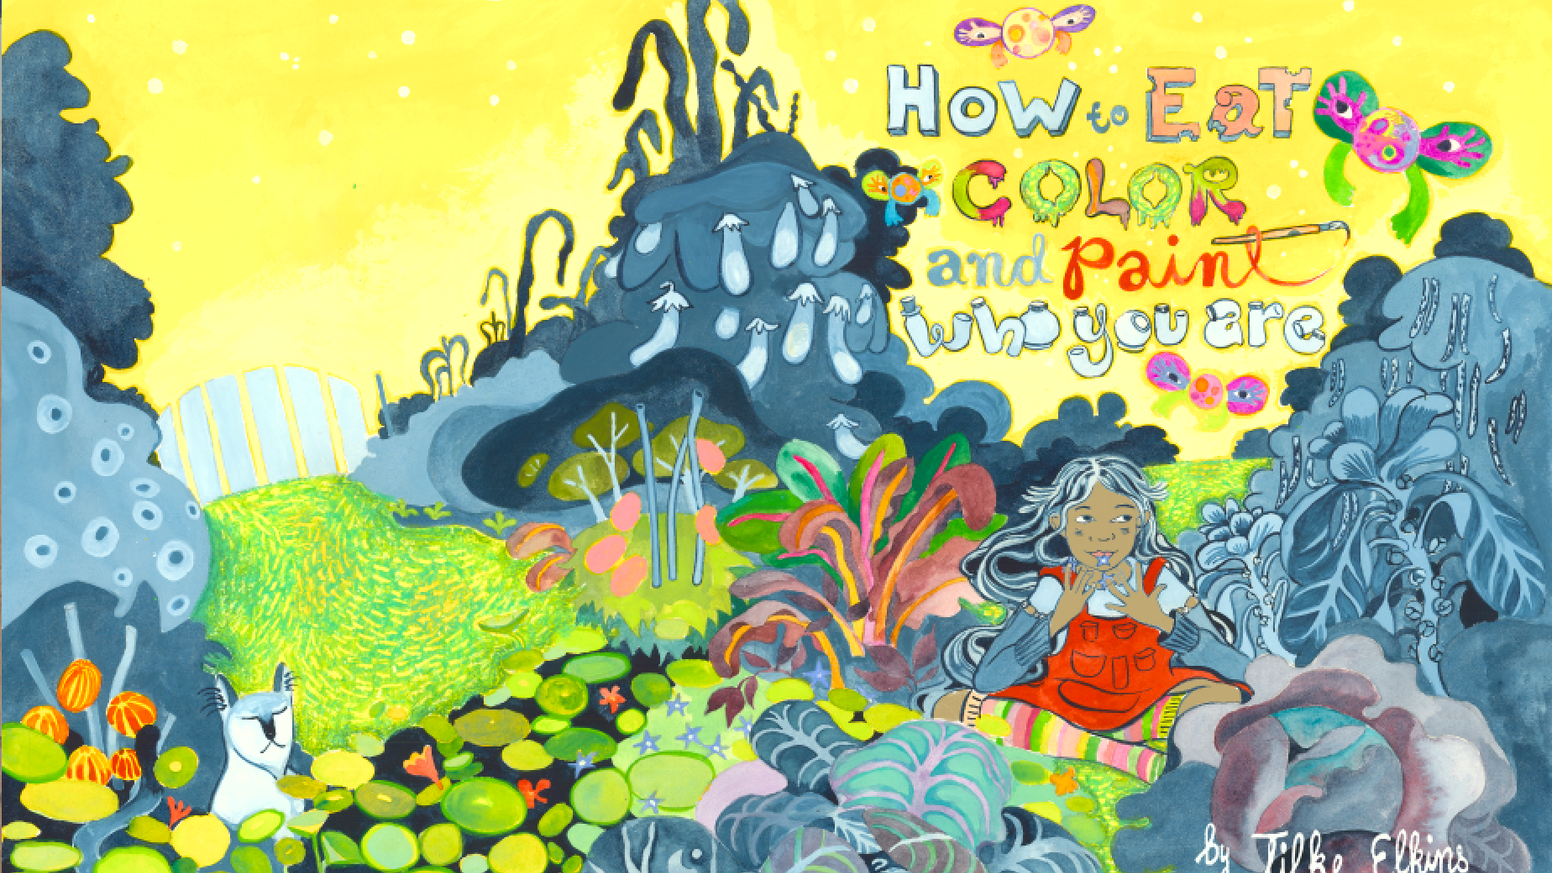 A lush picture book for kids of all ages about eating color, making your own paint, and creating 'color portraits' of people you love.